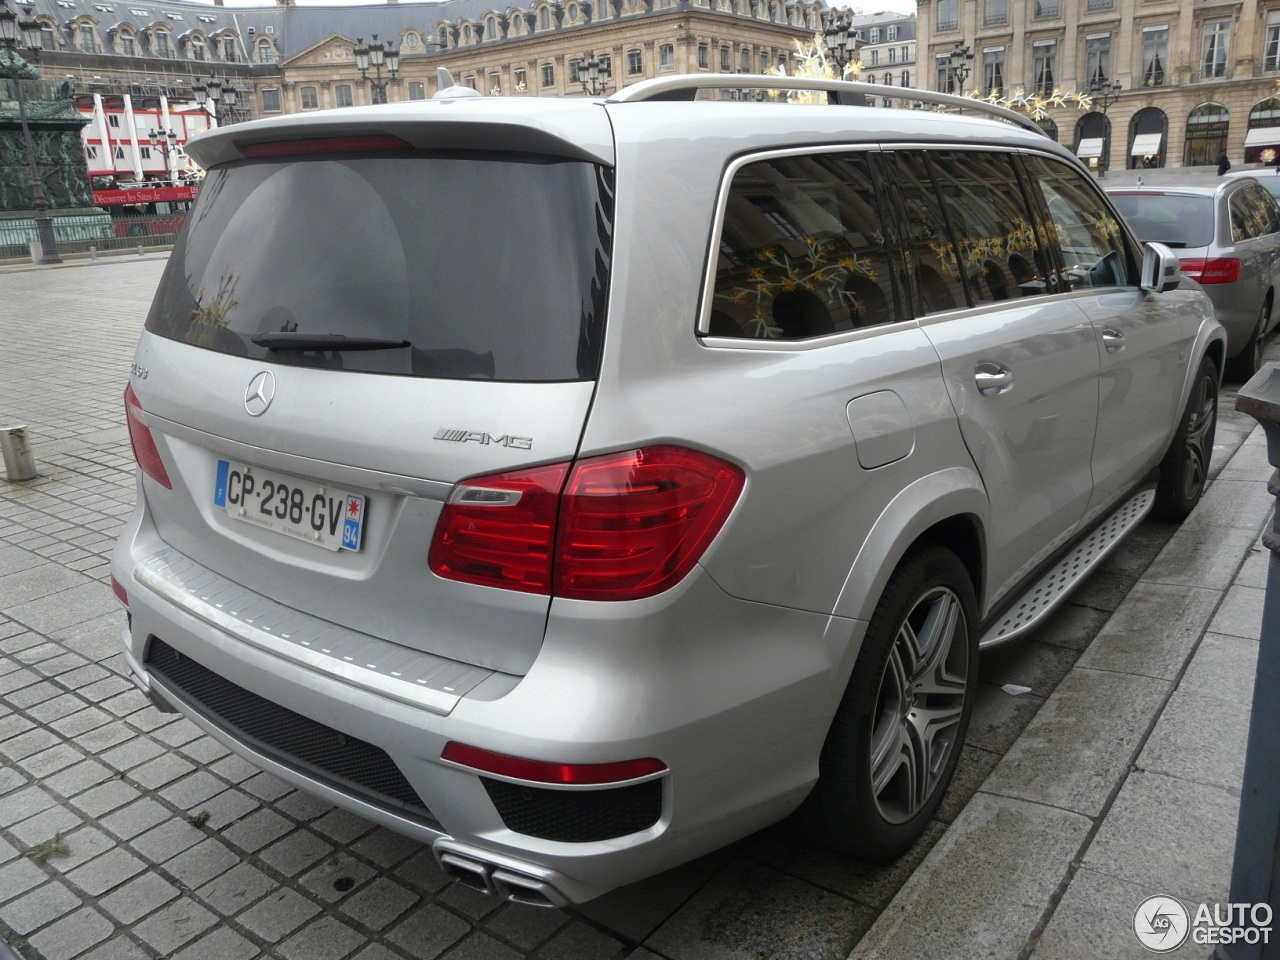 Mercedes benz gl 63 amg x166 4 january 2013 autogespot for Mercedes benz gl amg for sale